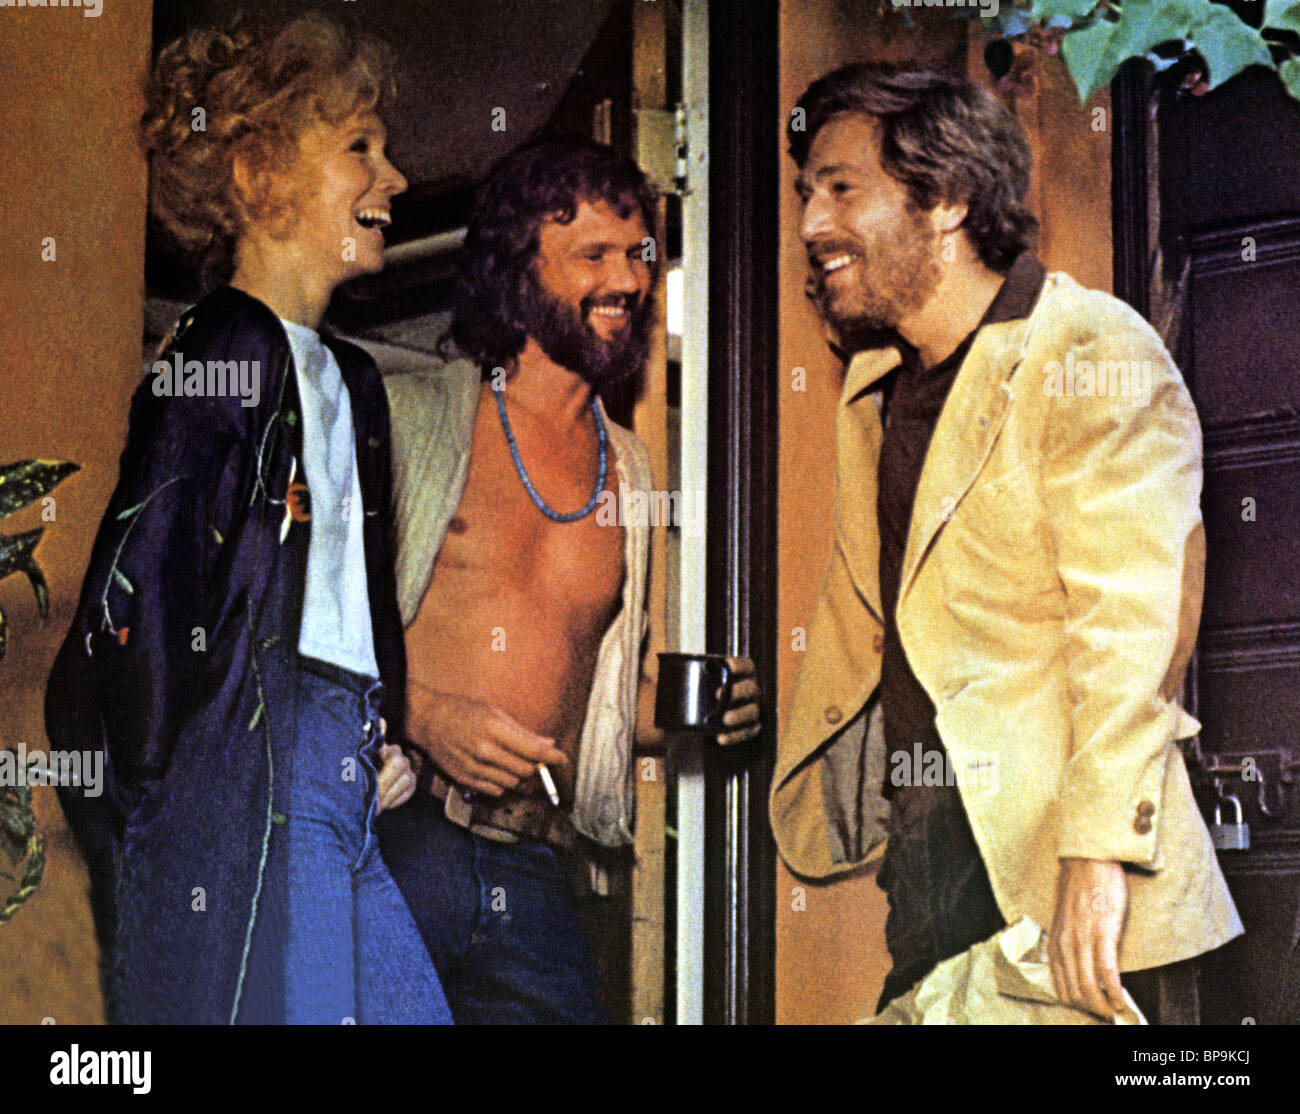 SUSAN ANSPACH, KRIS KRISTOFFERSON, GEORGE SEGAL, BLUME IN LOVE, 1973 - Stock Image